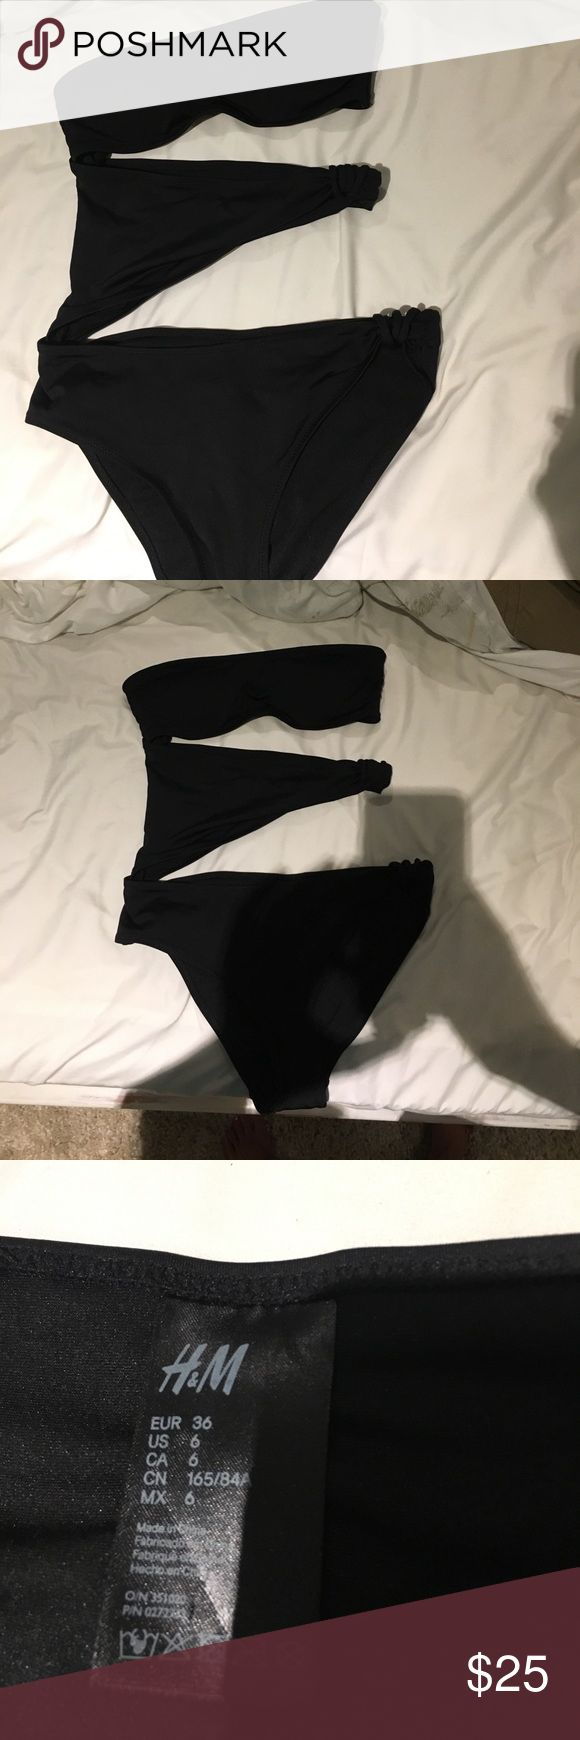 Cutout bikini tube top one piece bikini Never worn! Just modeled so you can see too small for my bust! Perfect condition! Offers are accepted (all of them) use button! Fits 00-6 H&M Swim One Pieces